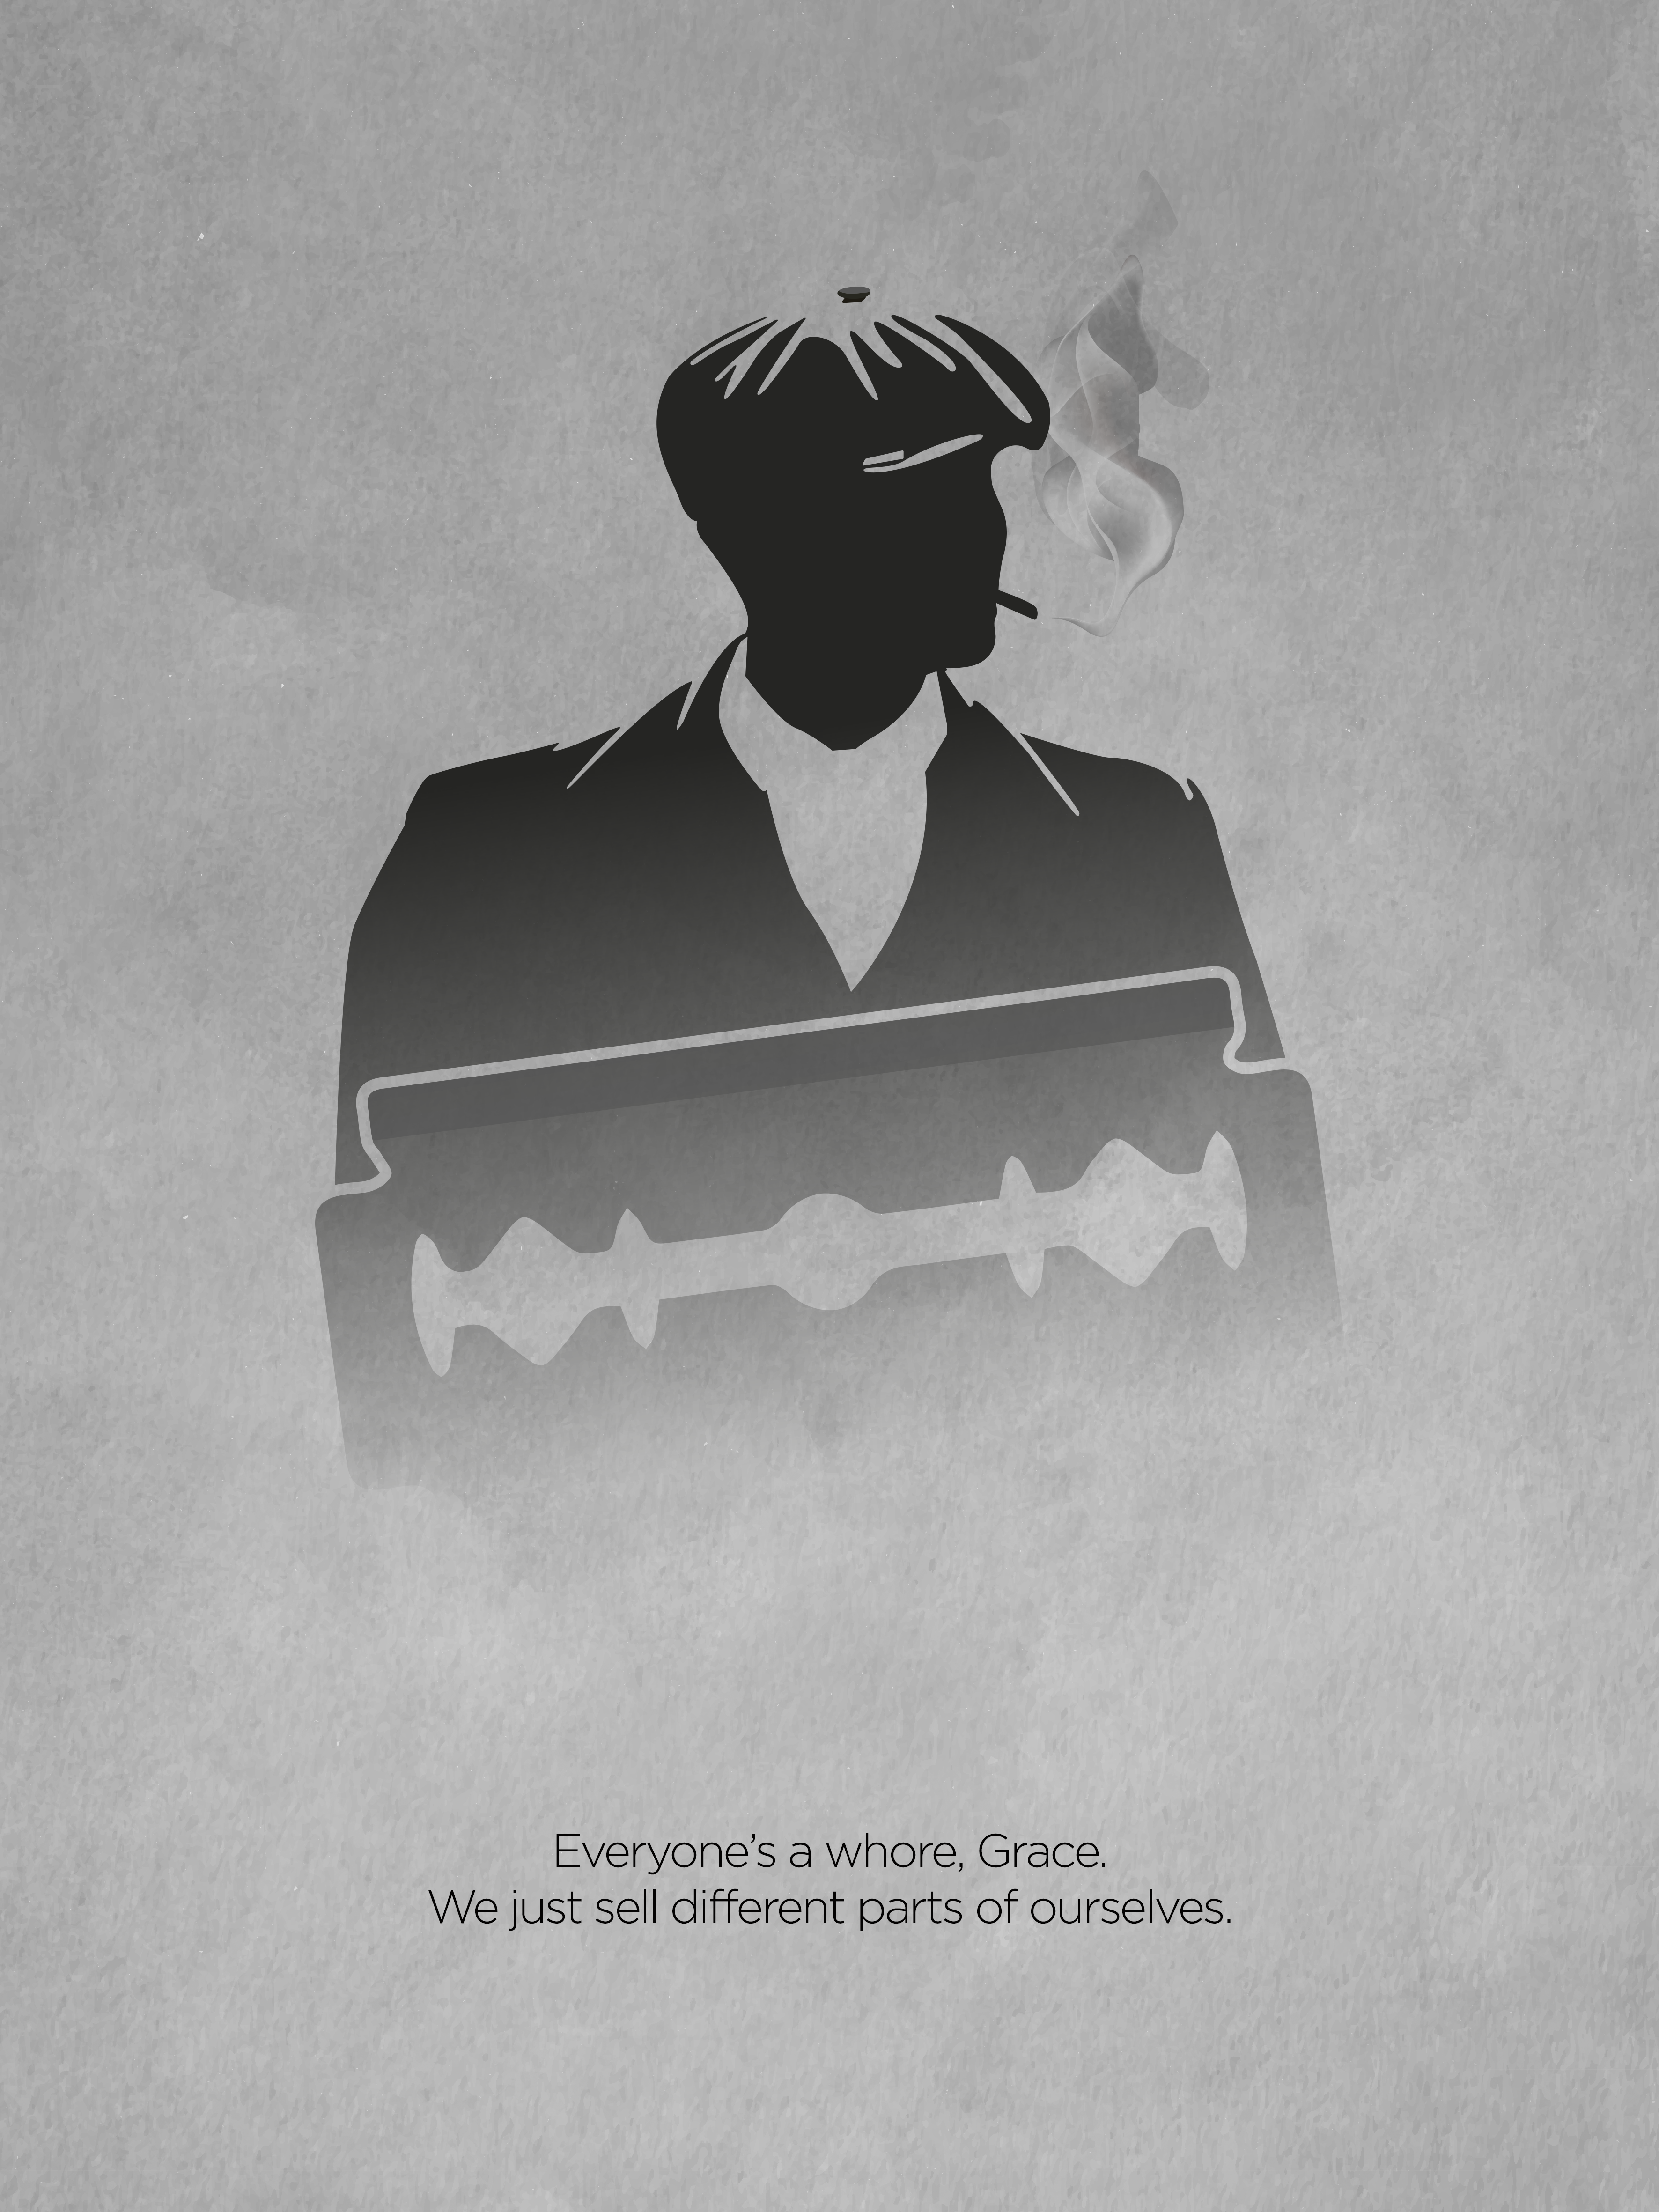 Peaky Blinders serie minimalist poster and quote, with